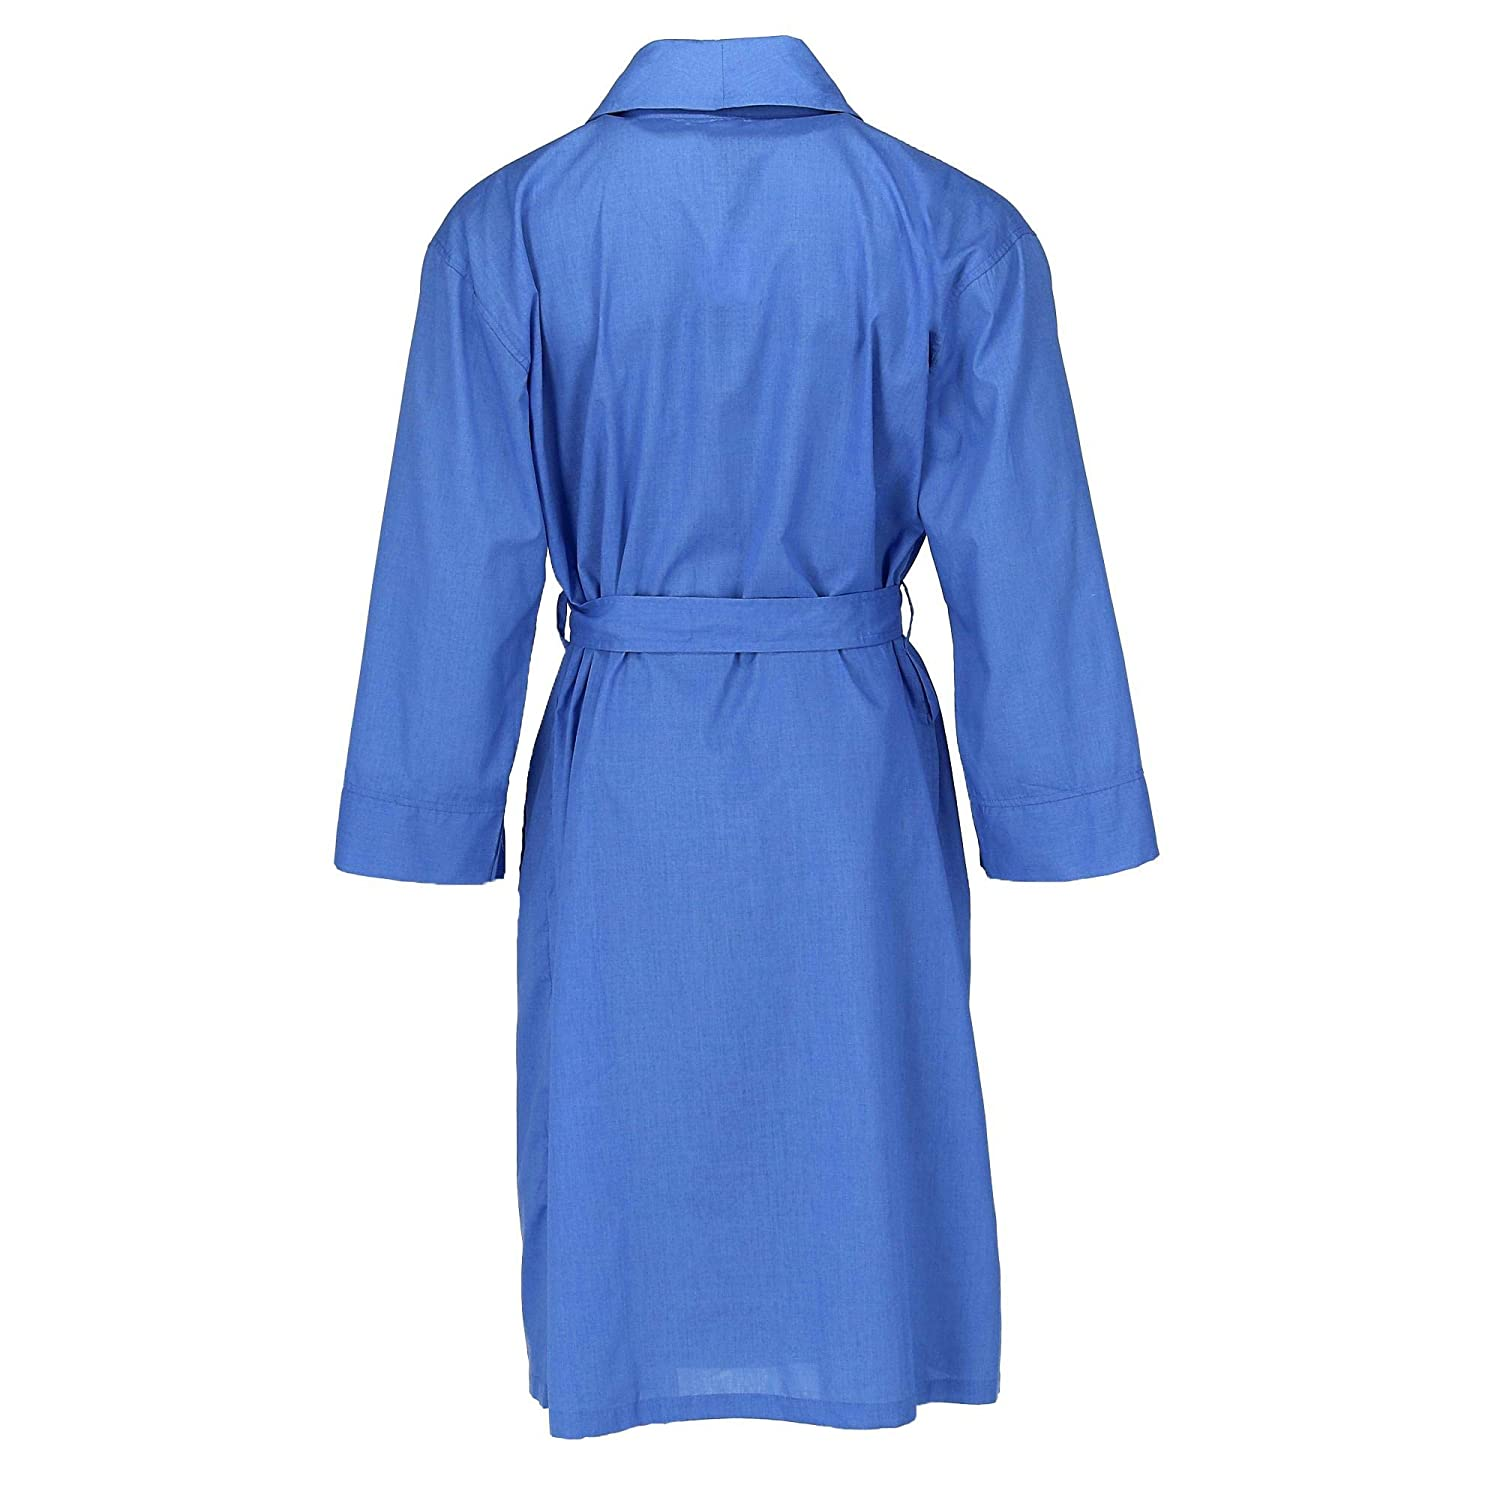 Hanes Mens Big and Tall Lightweight Woven Dressing Gown